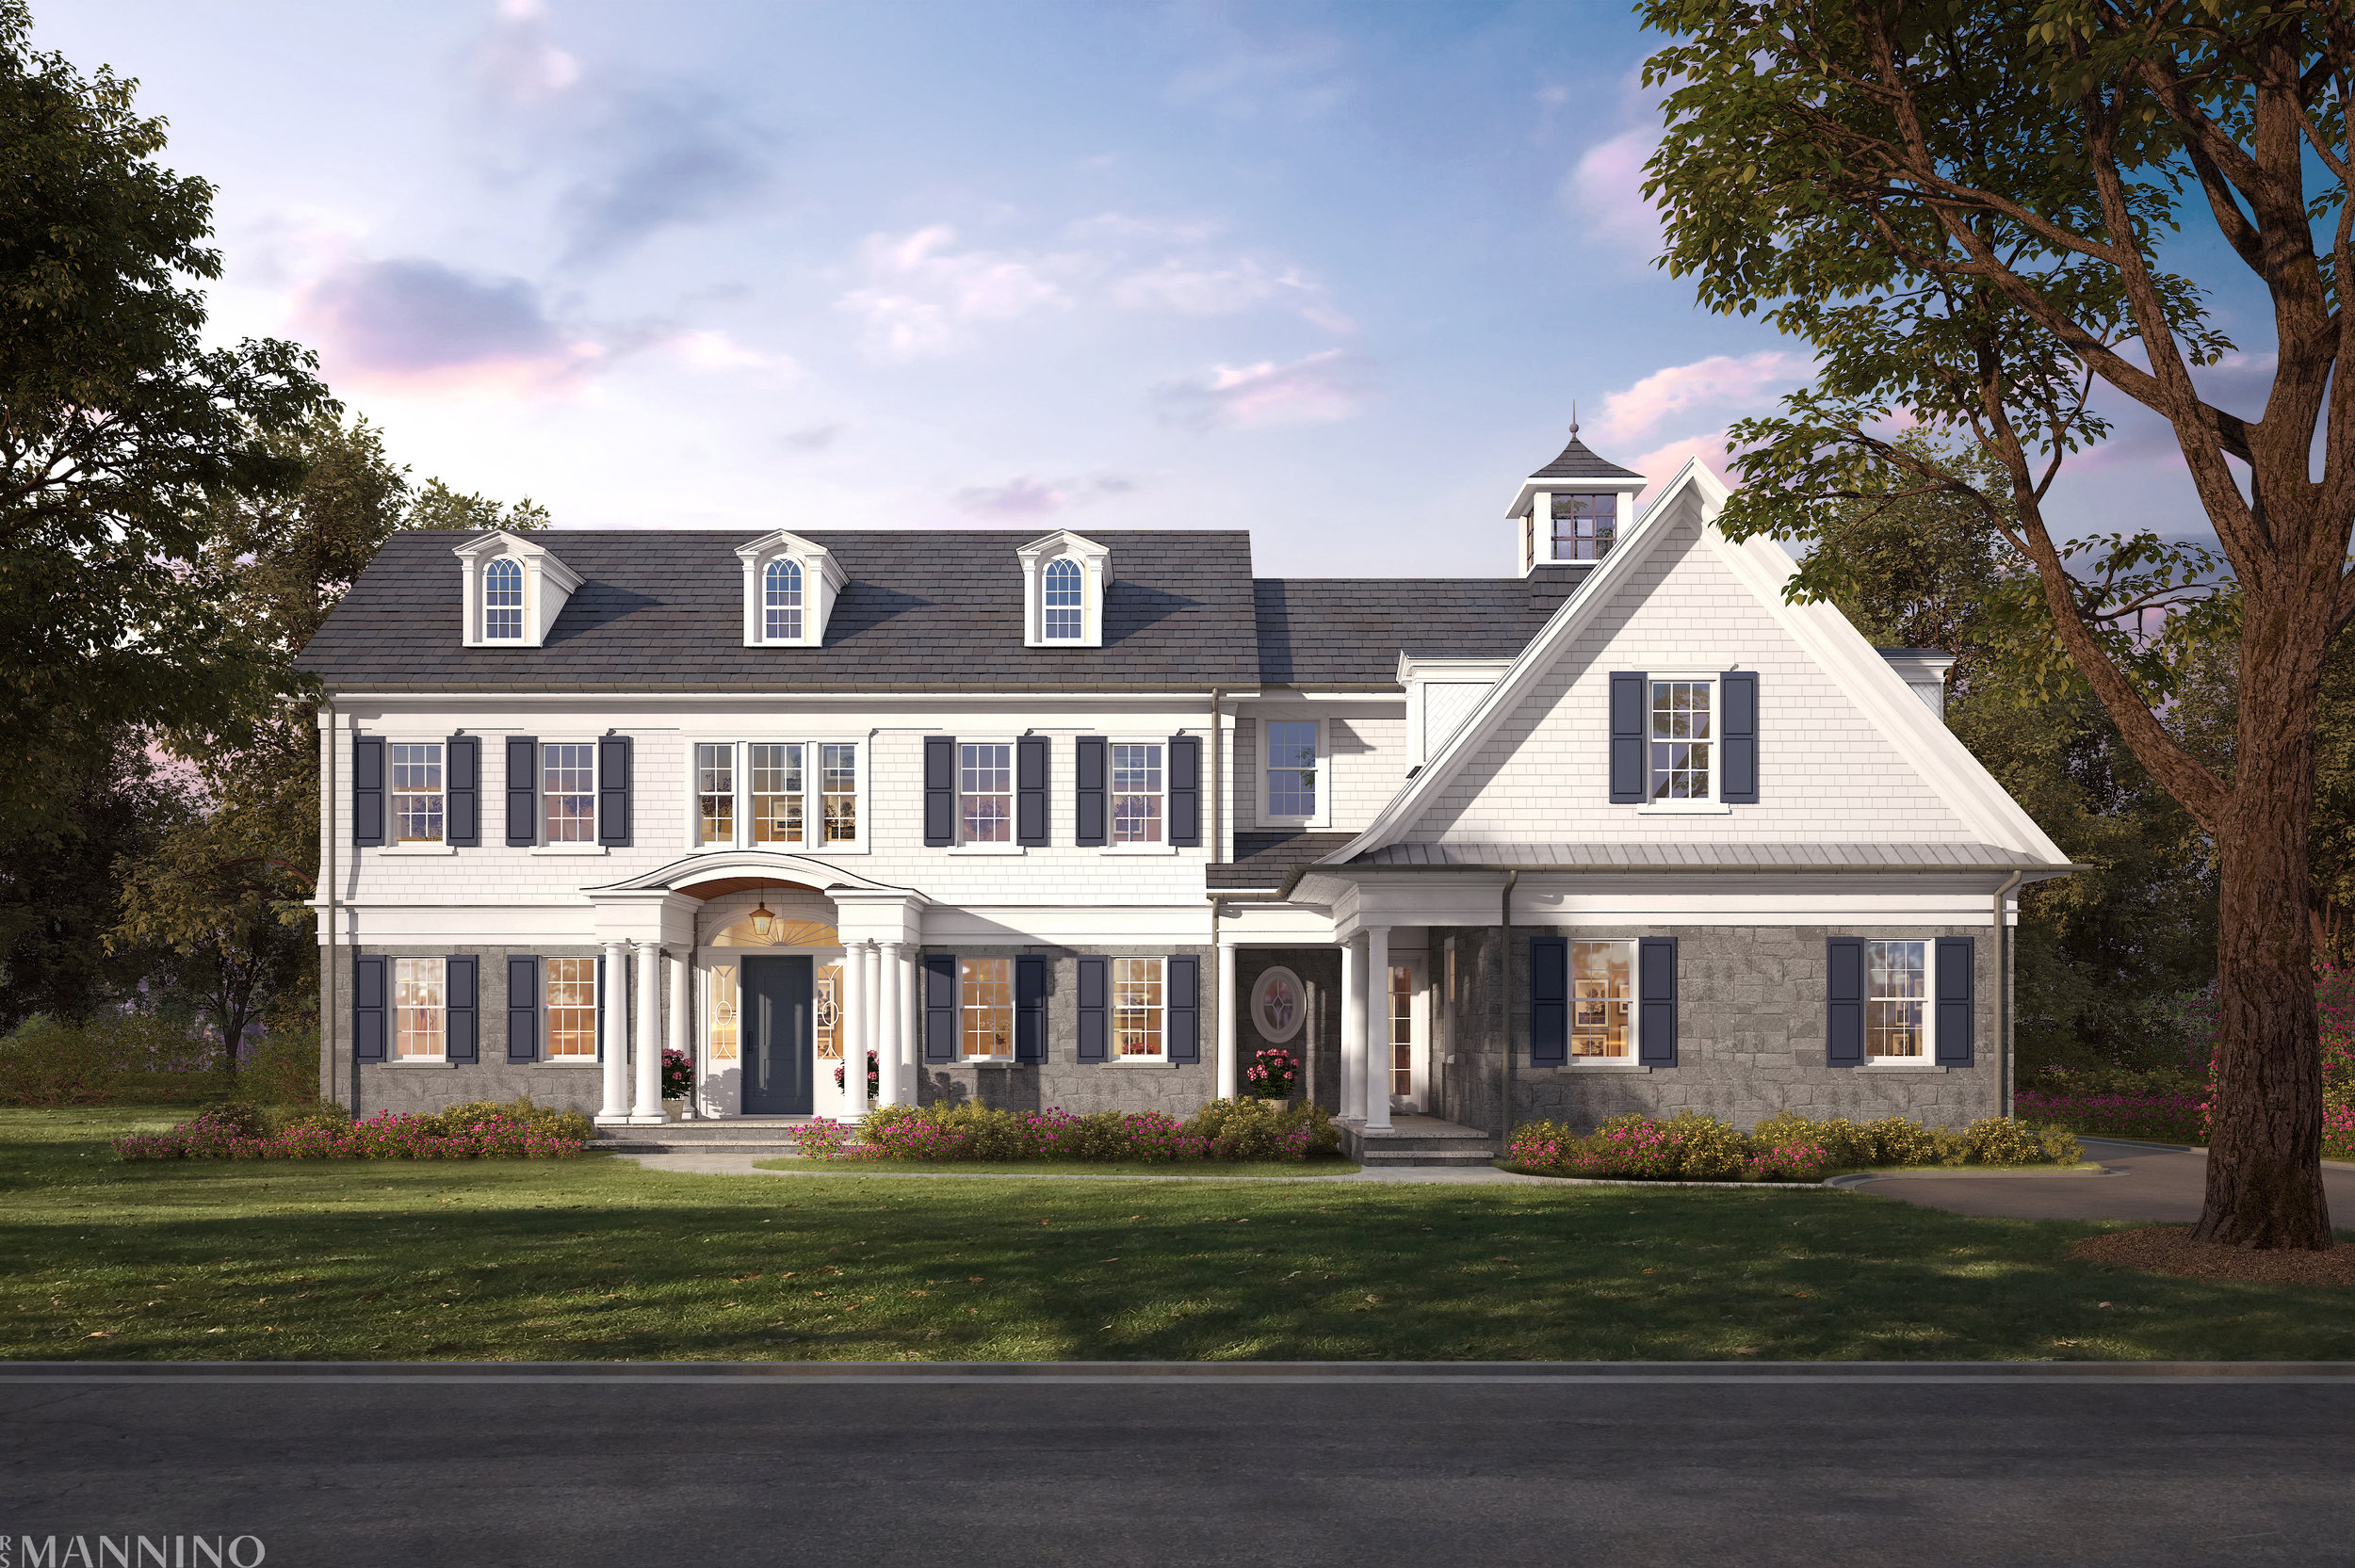 Timeless, classic, colonial, these might be a few words that could describe this new home.